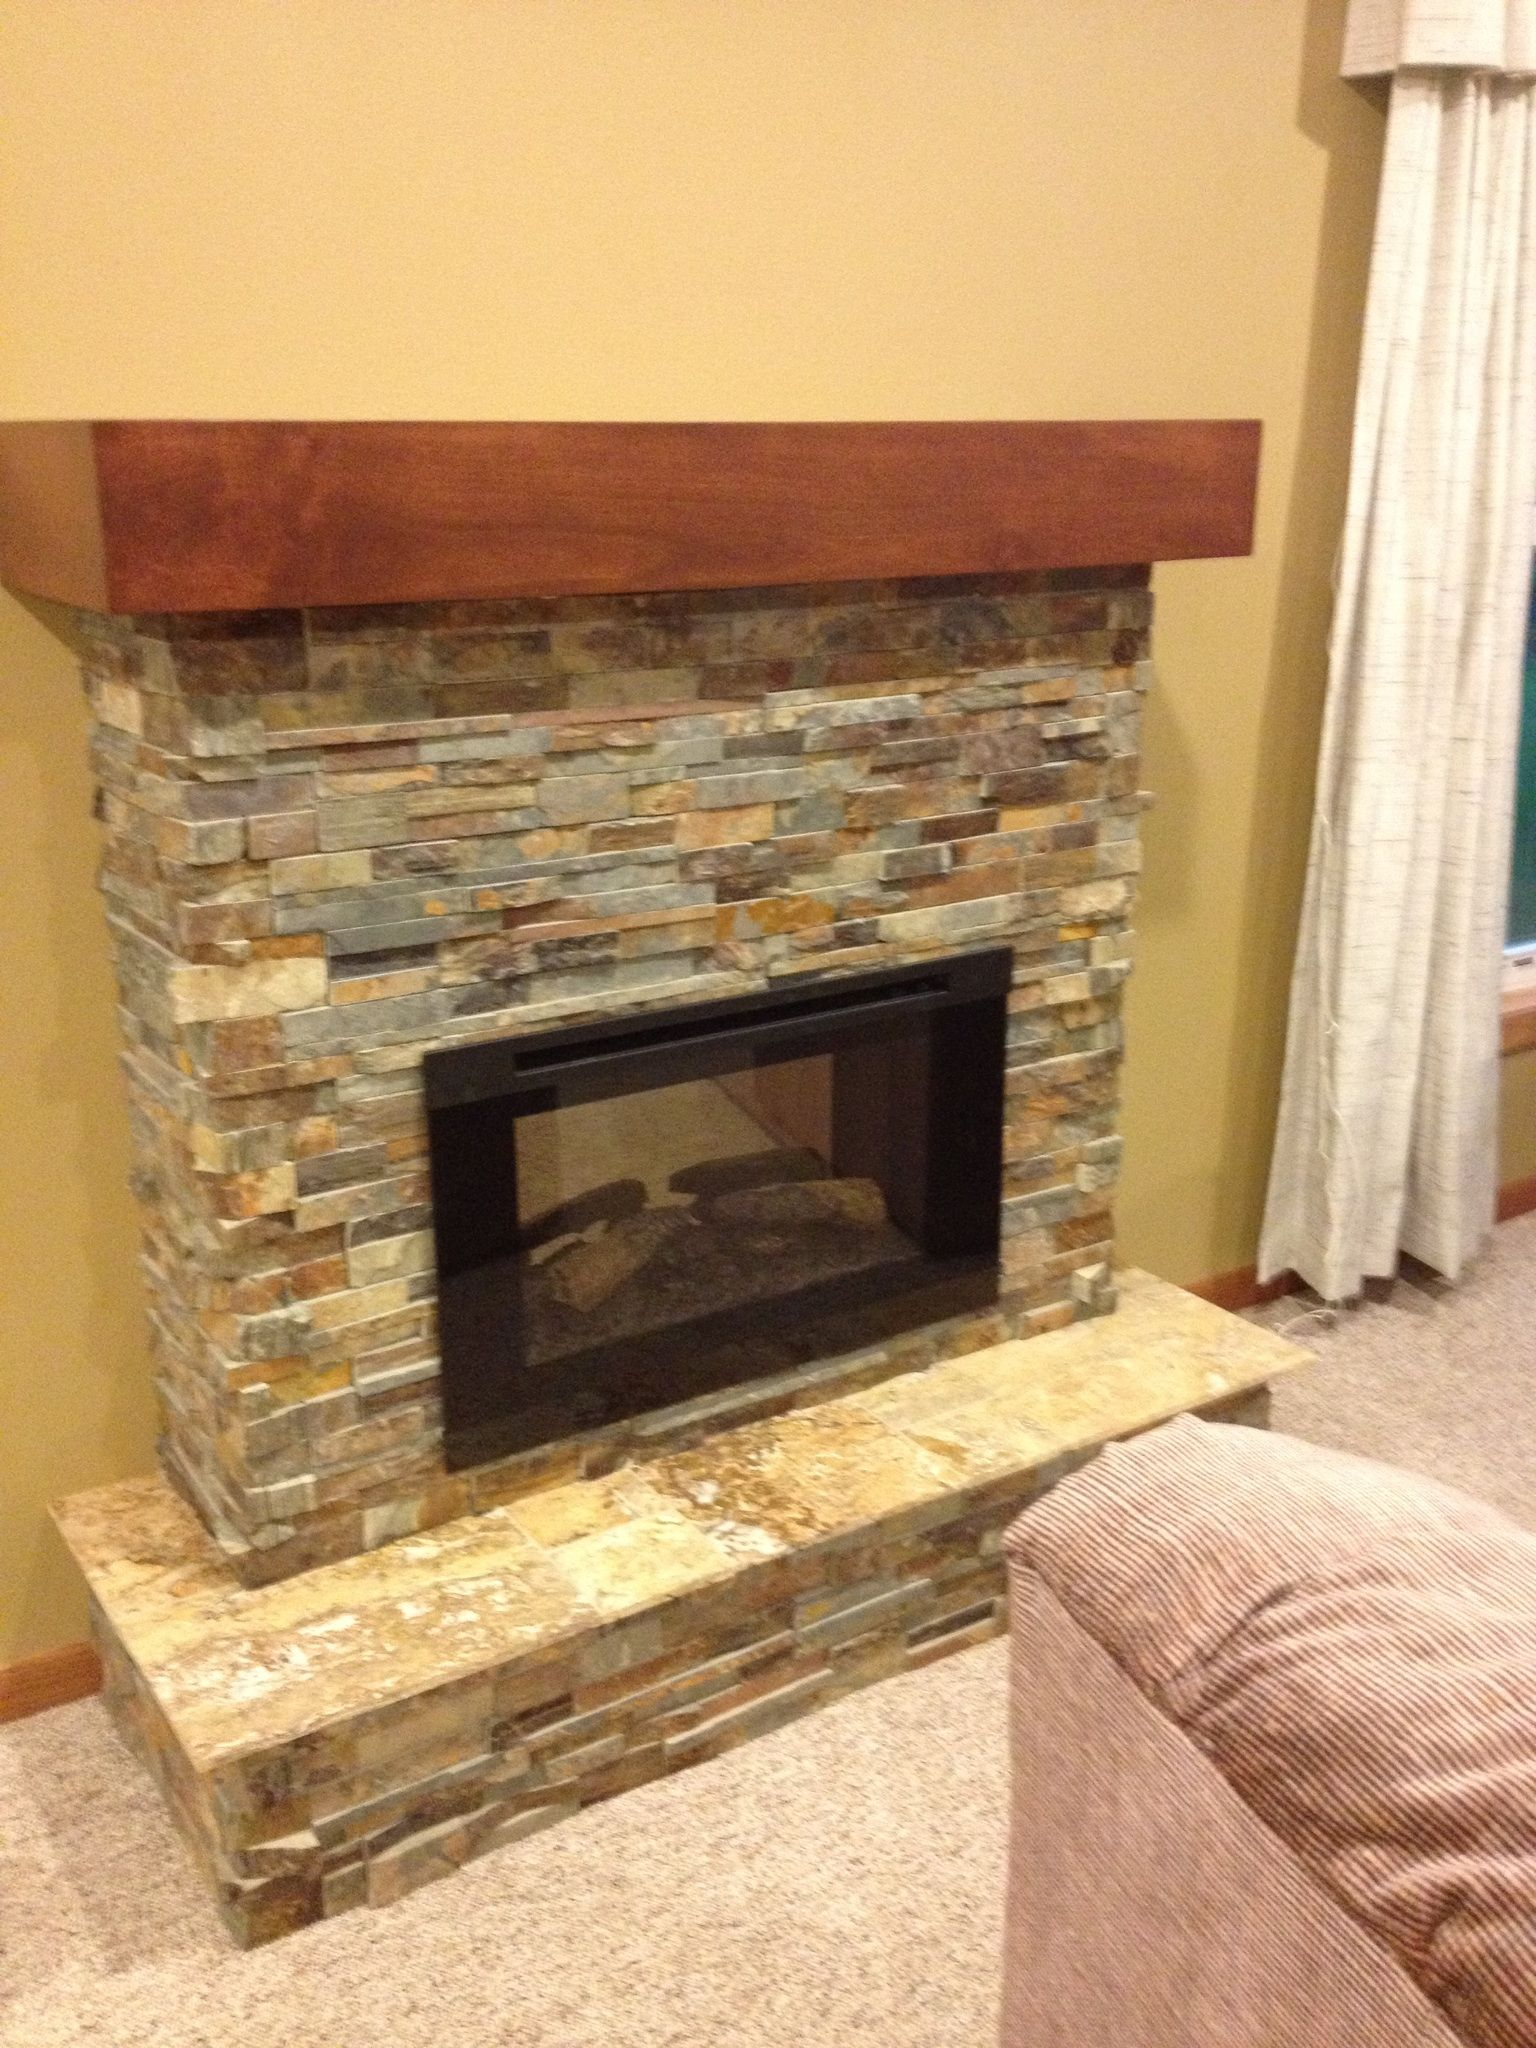 Basement Fireplace Ideas Our Basement Fireplace My Ideas Pinterest Basements